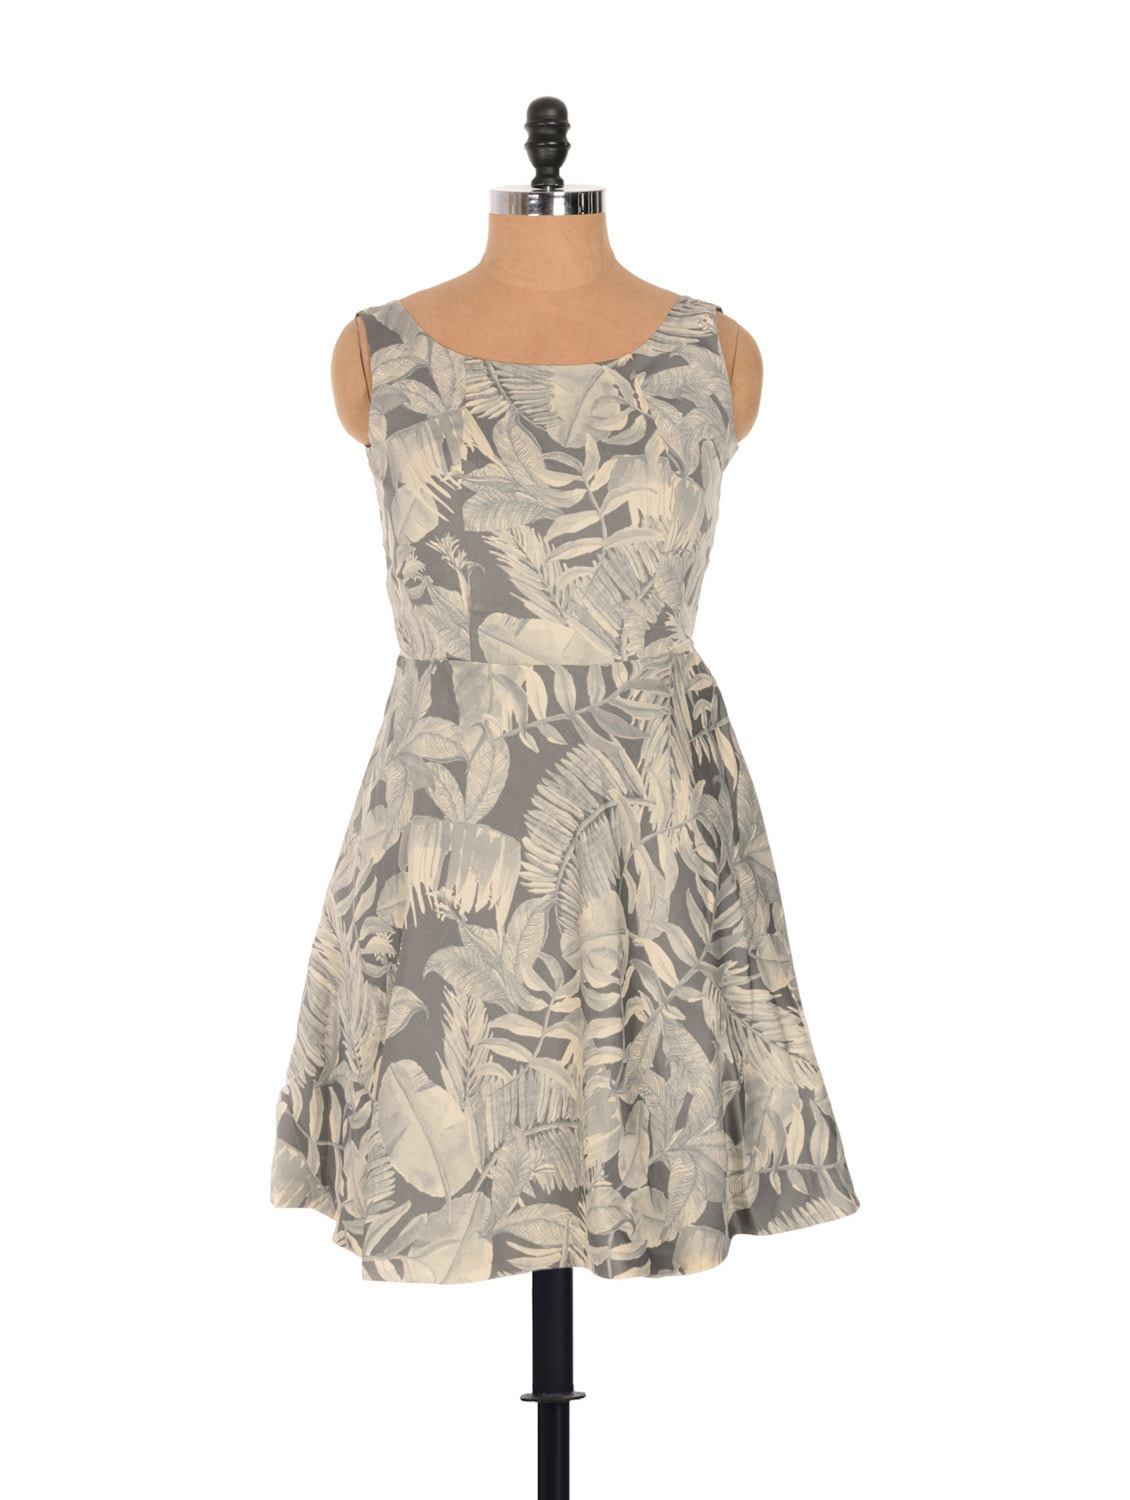 Tropical Print Dress With A Cut-out Back - Nangalia Ruchira